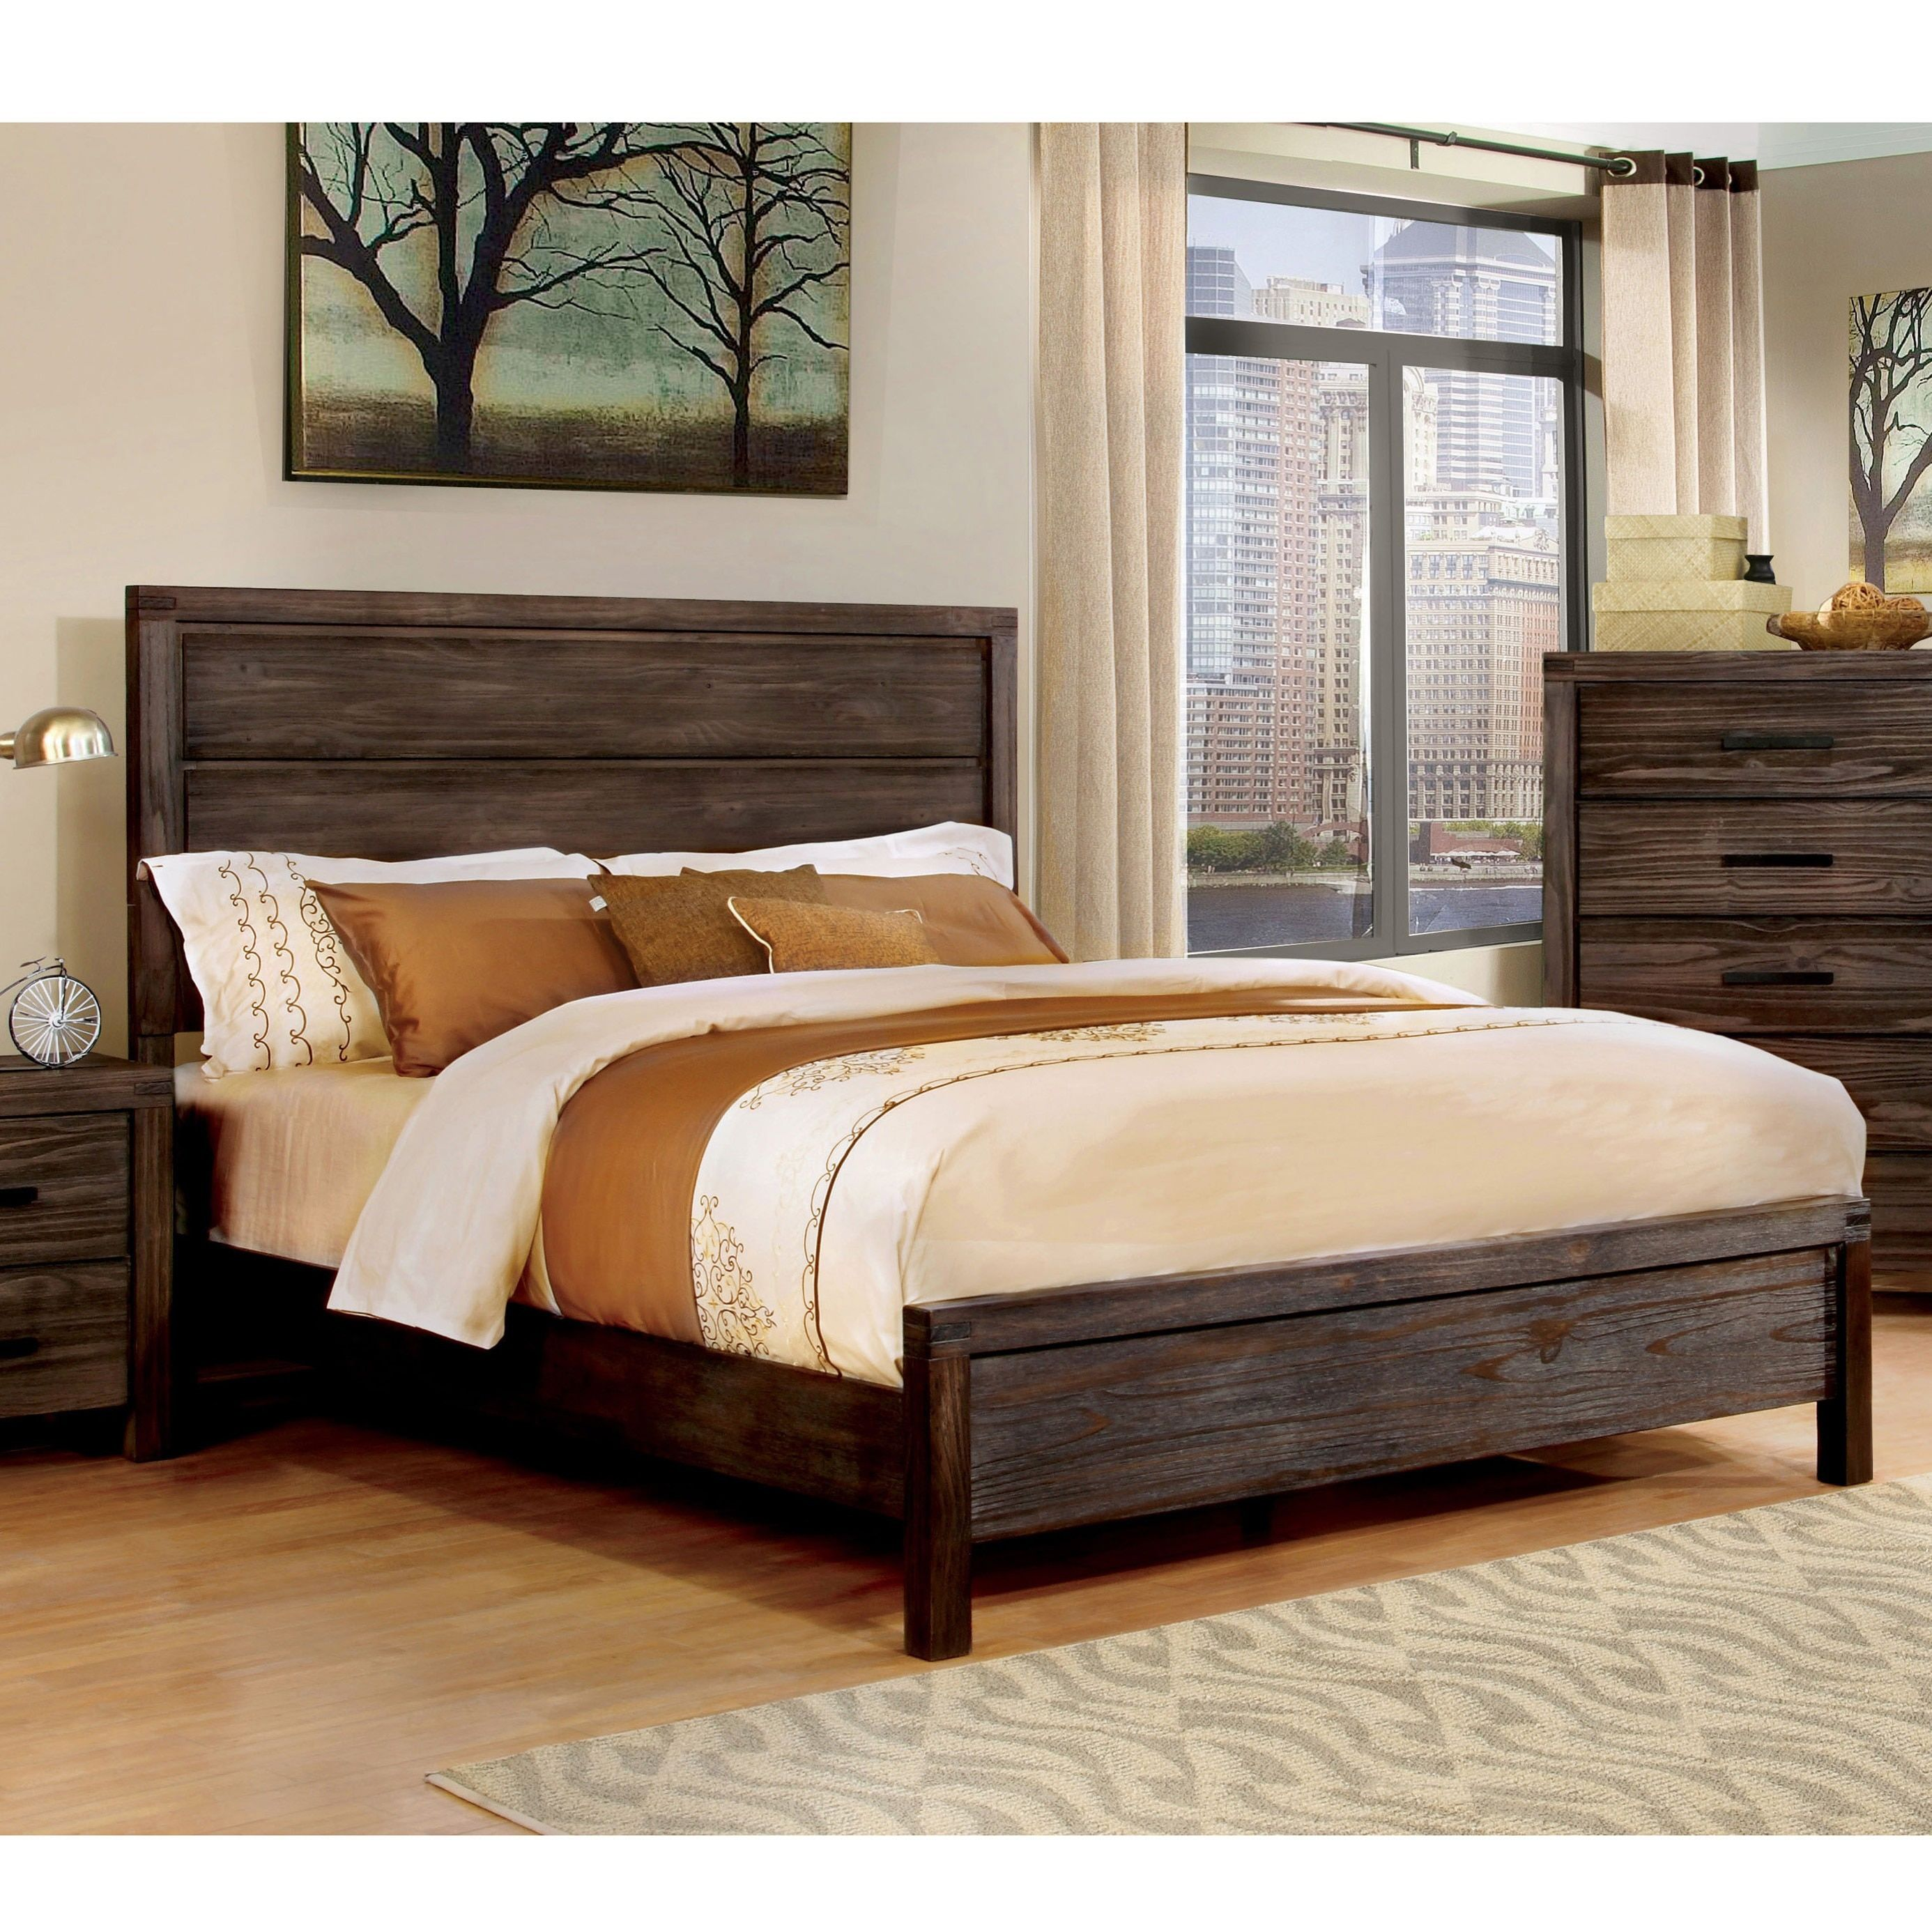 Overstock Com Online Shopping Bedding Furniture Electronics Jewelry Clothing More Brown Panel Bed Furniture Furniture Of America